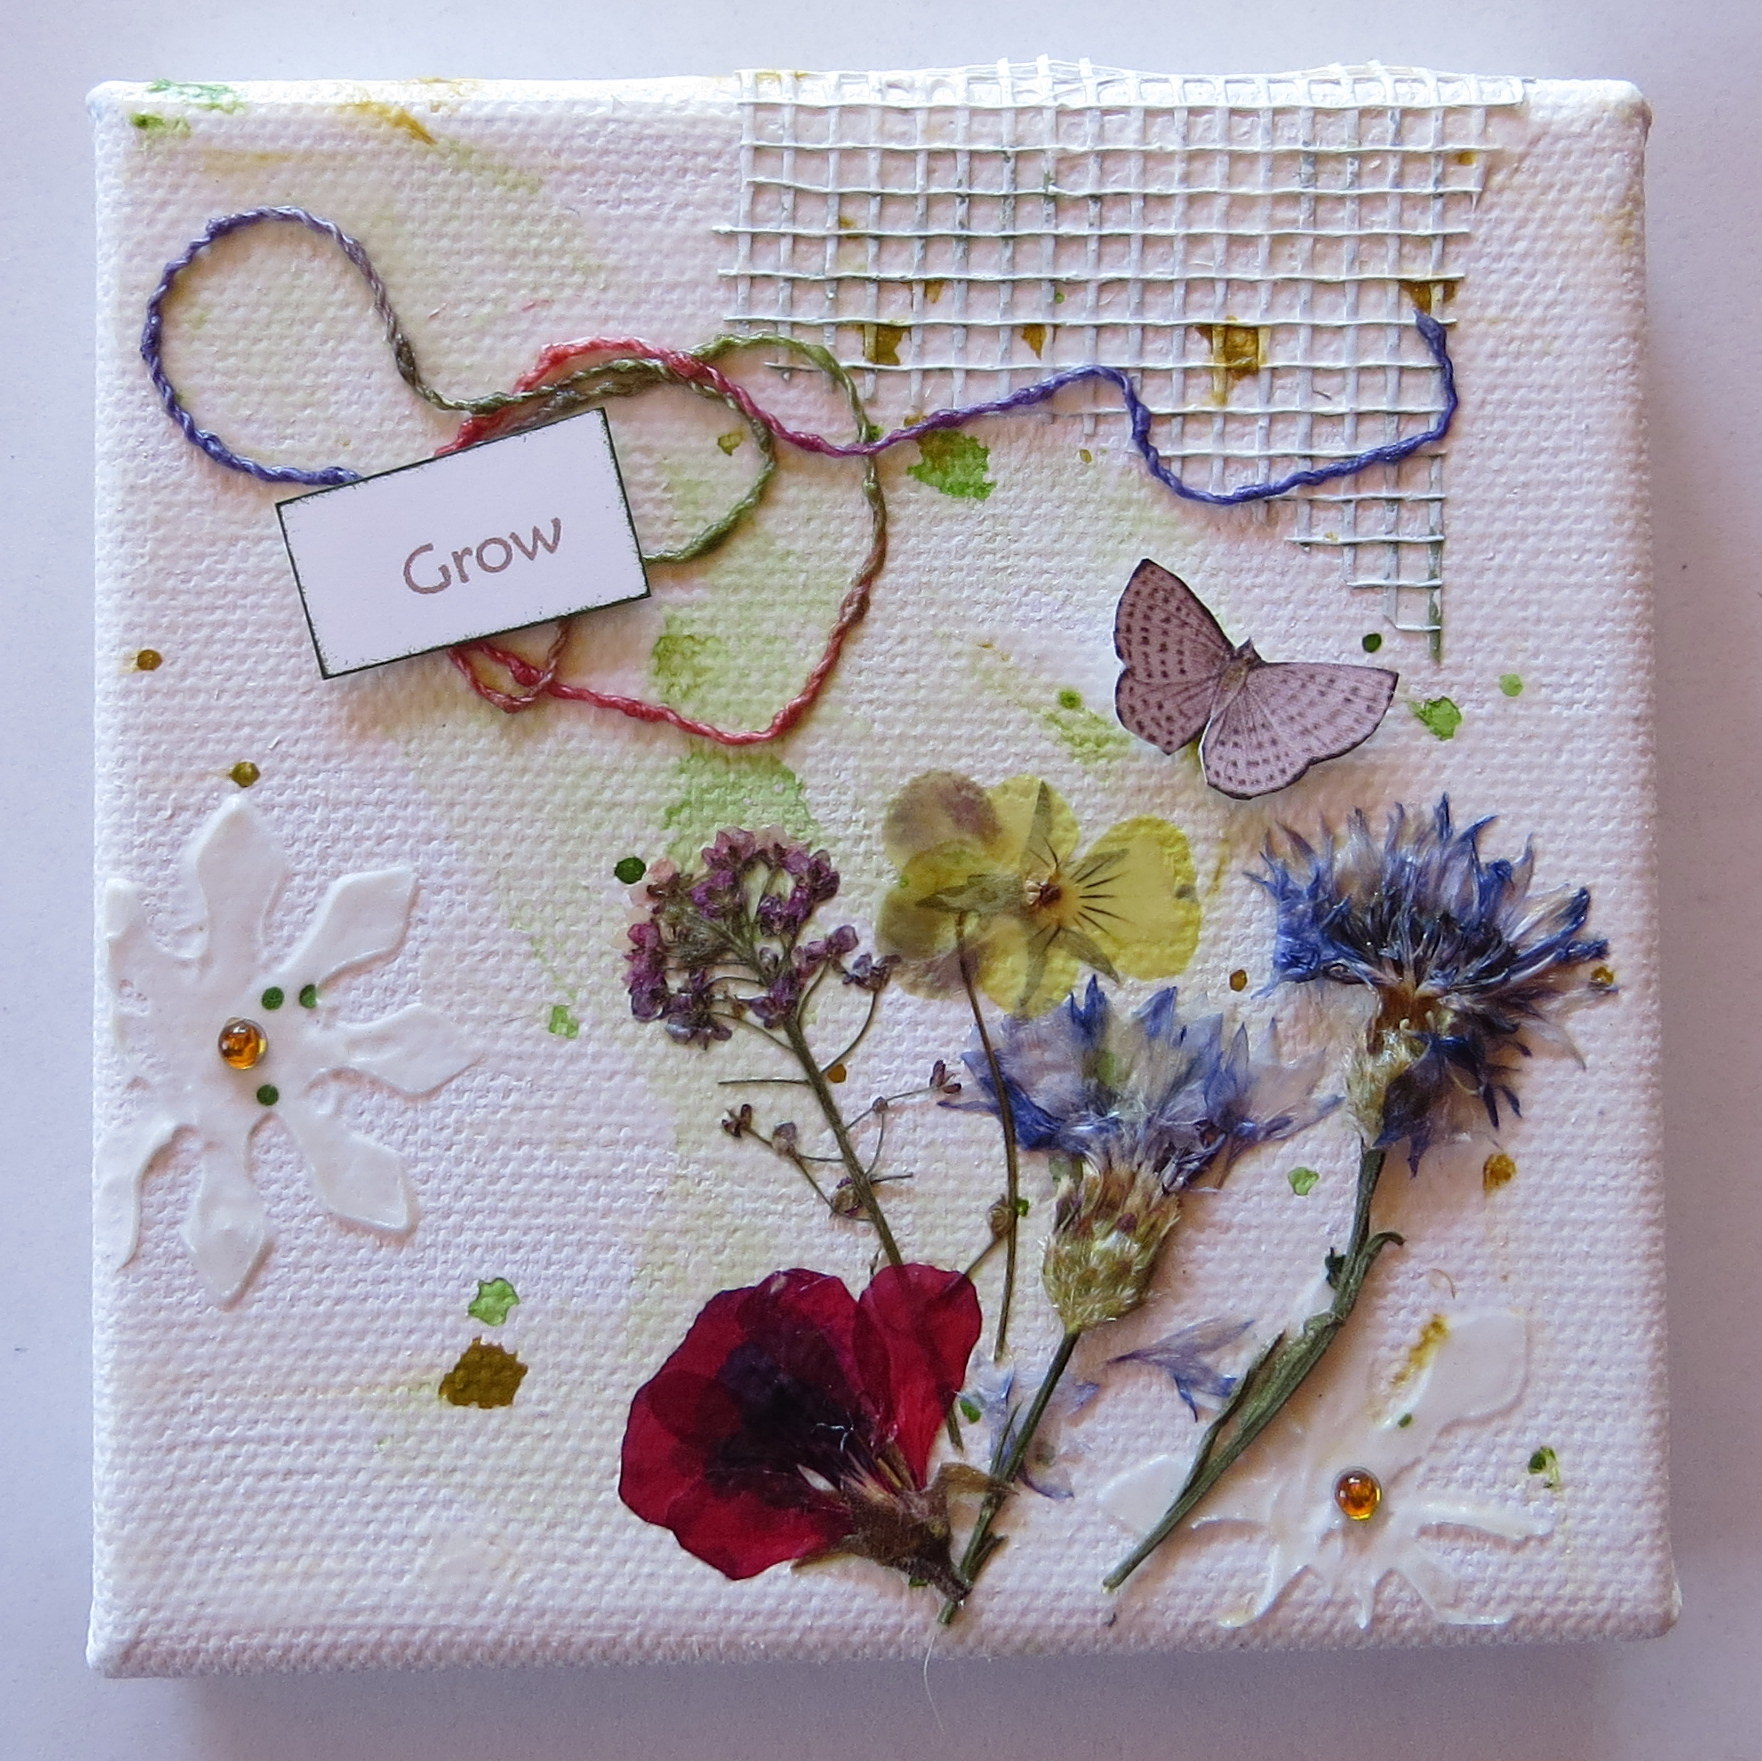 How to scrapbook flowers - Mini Canvases1